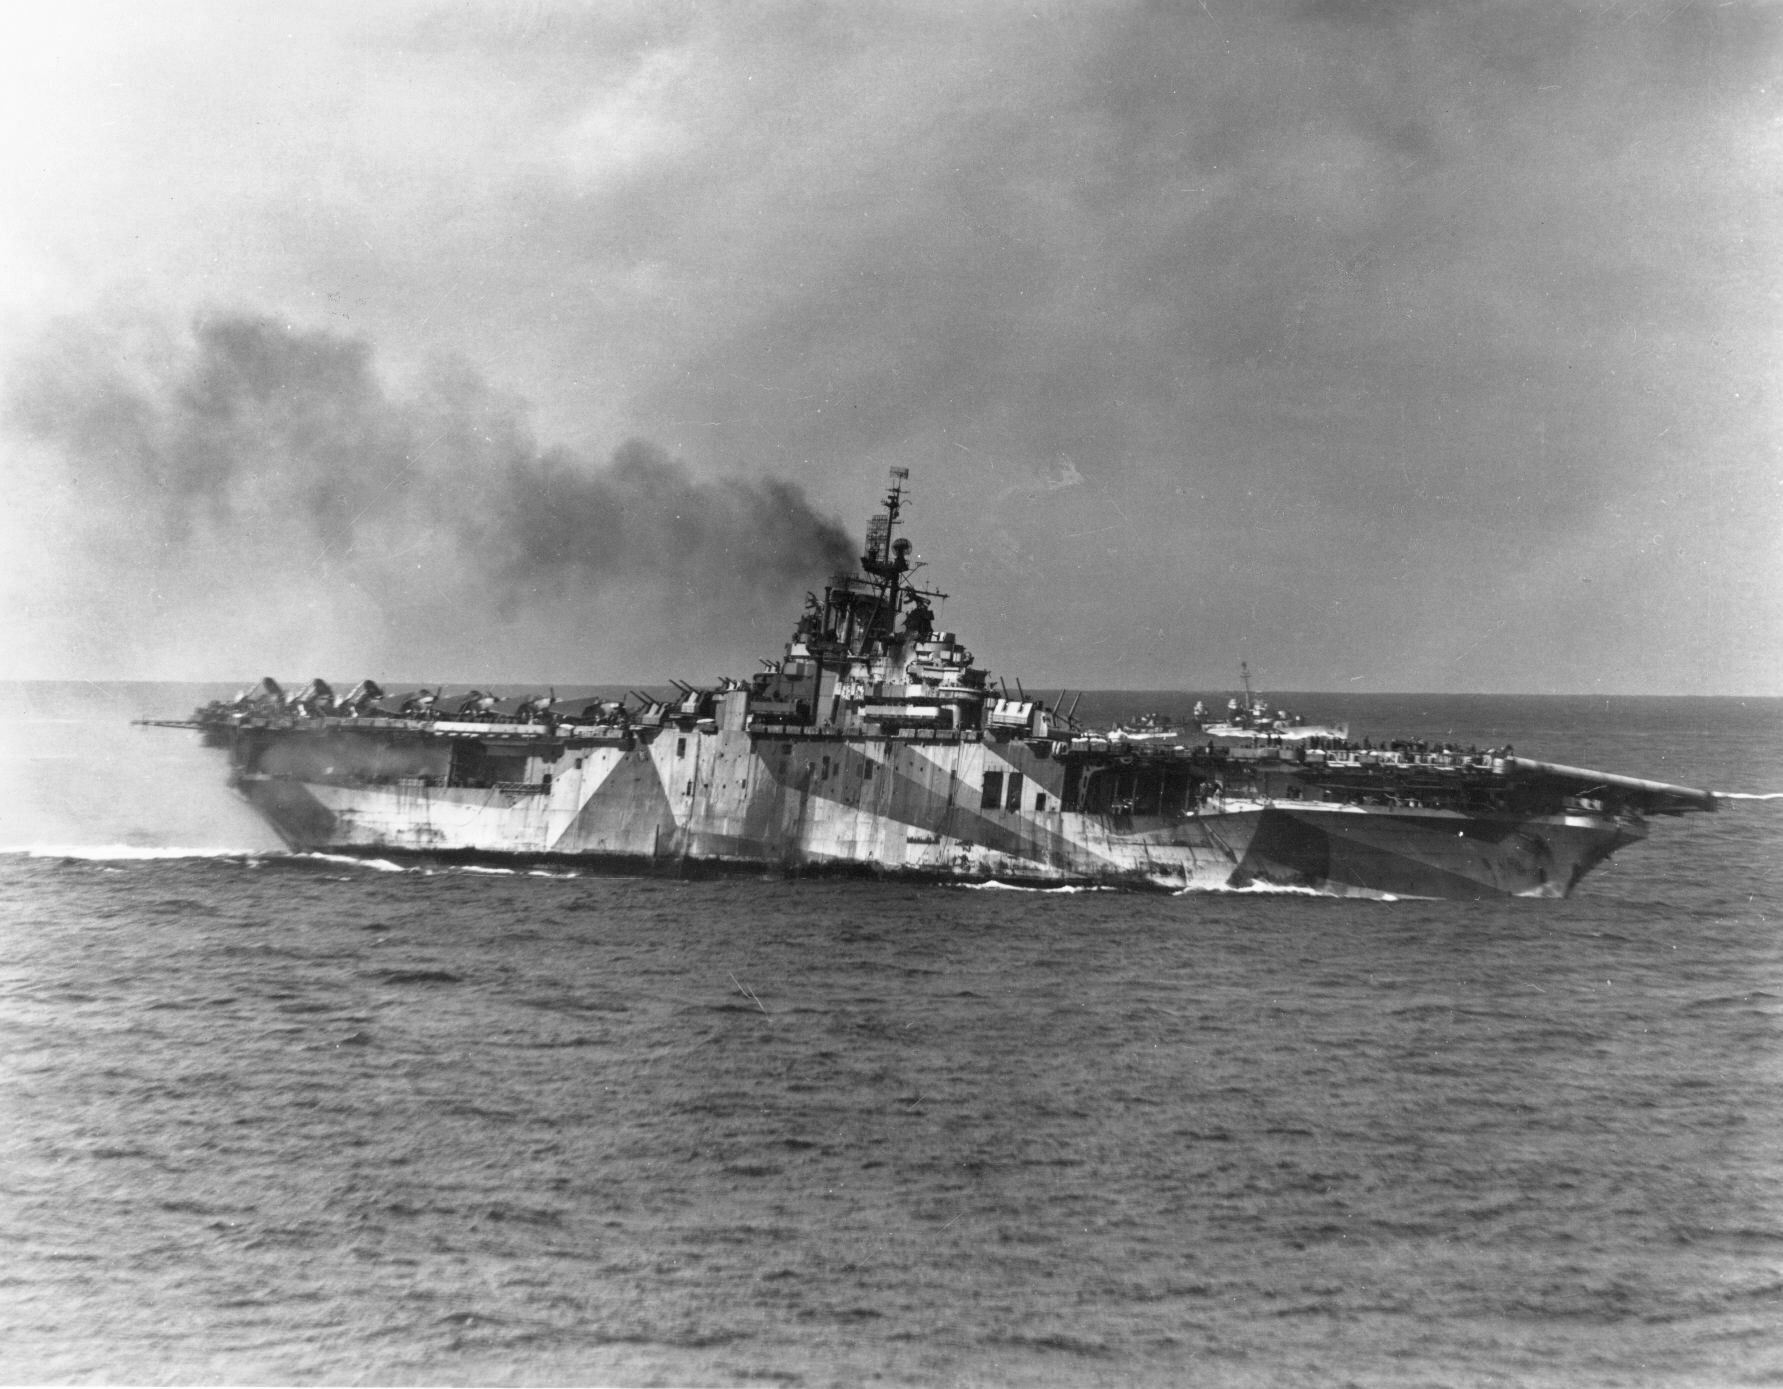 ticonderoga listing after kamikaze attacks  21 january 1945